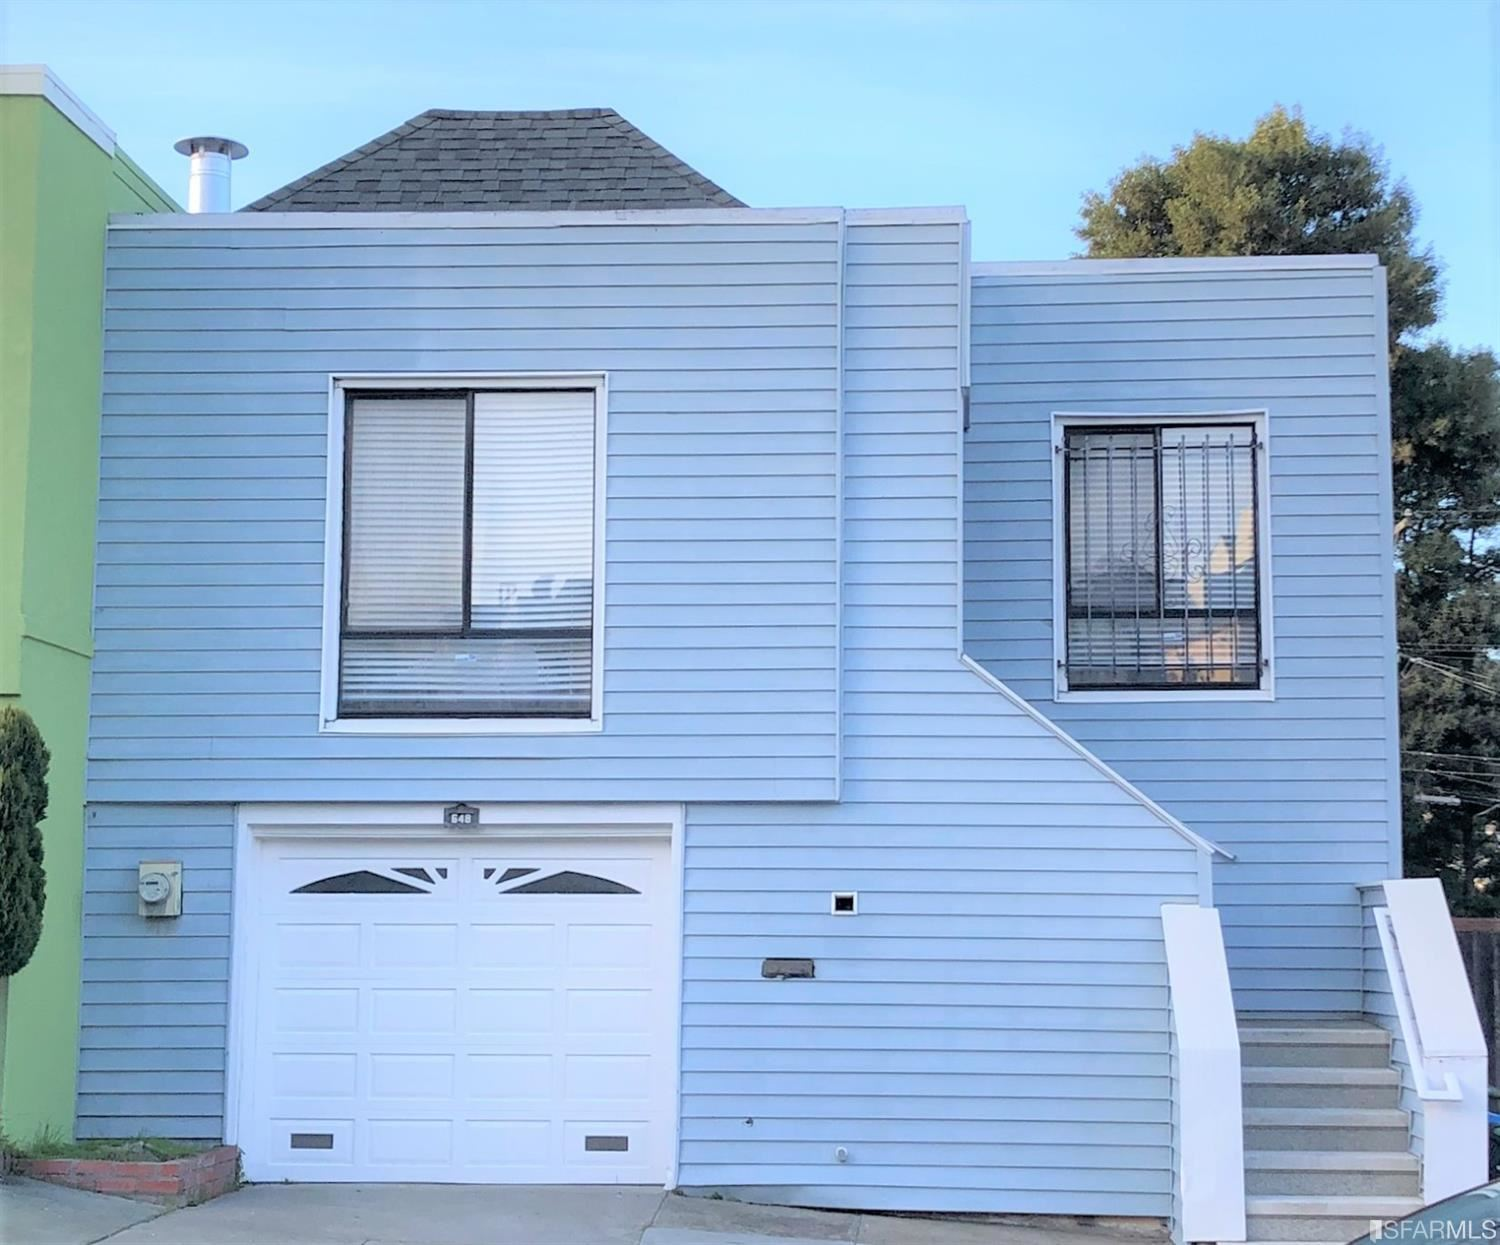 648 Sweeny Street, San Francisco, CA 94134 - #: 494609